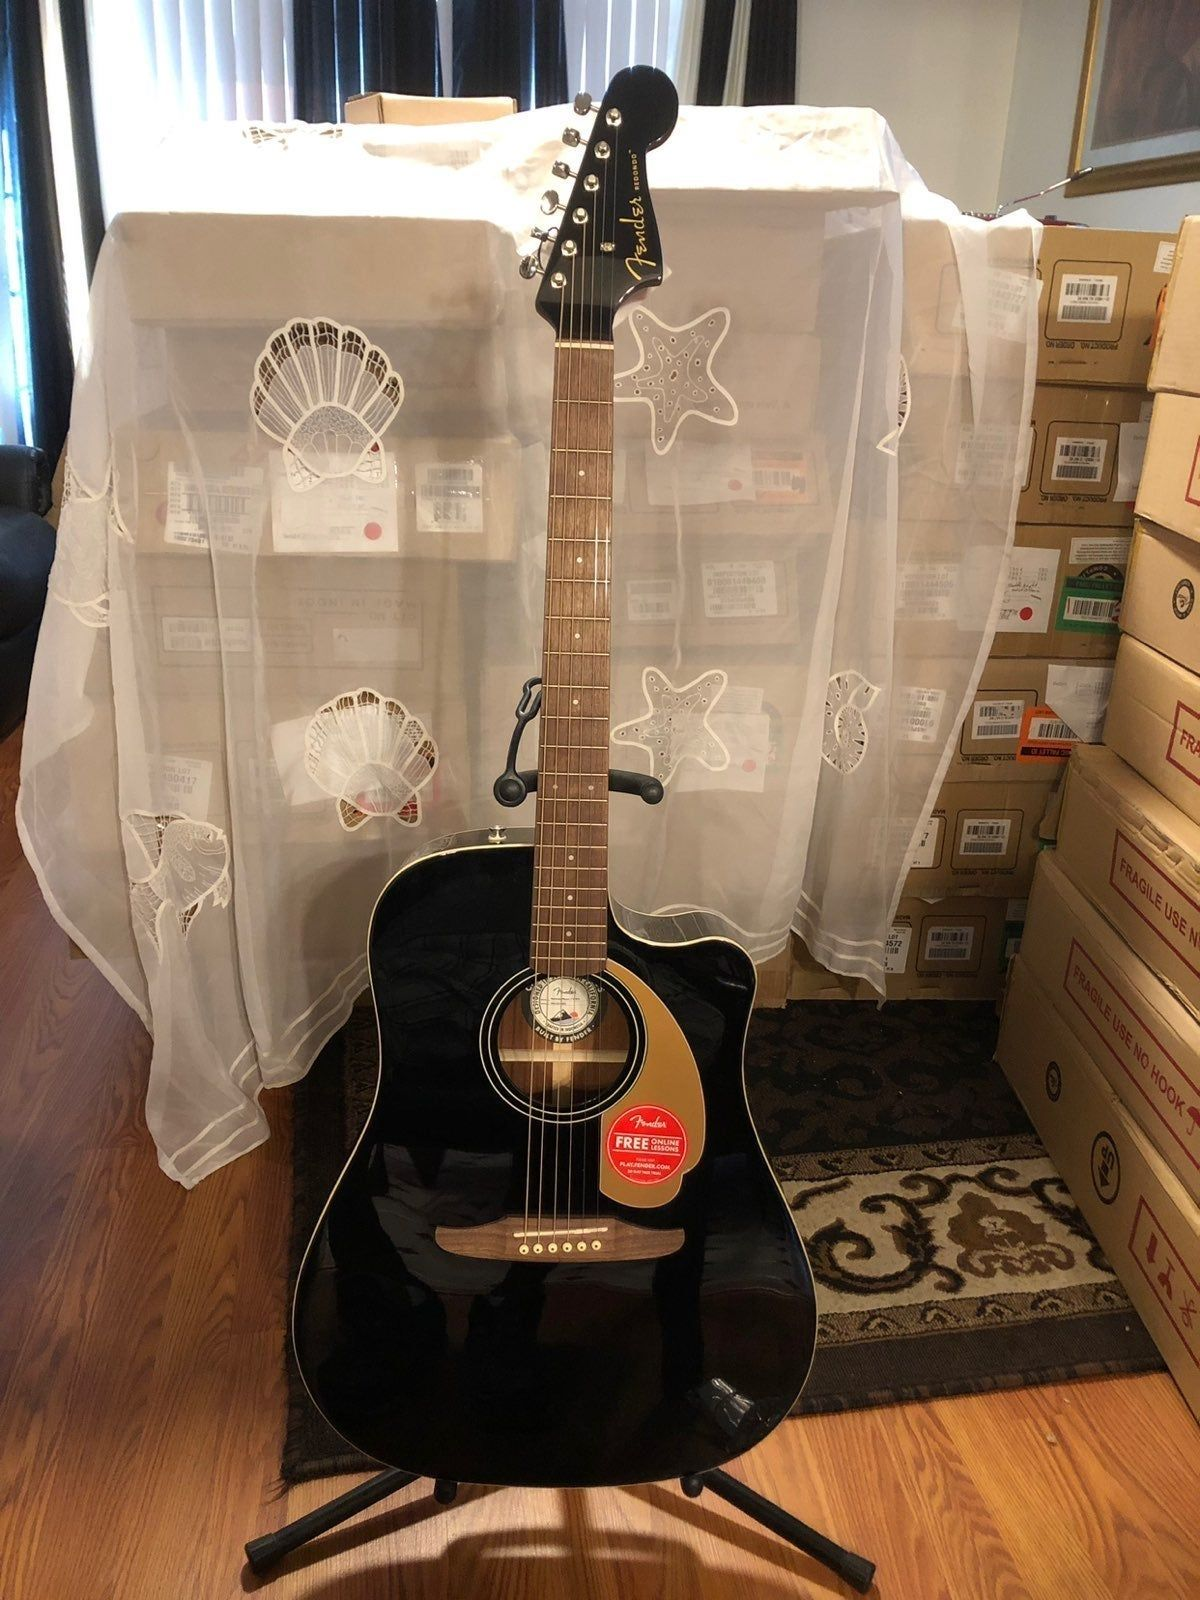 Fender Redondo Player Electric Acoustic Guitar Jetty Black Guitar With Walnut Fretboard It Feature Optimize Bracing For Reduced Mas Guitar Fender Cool Guitar